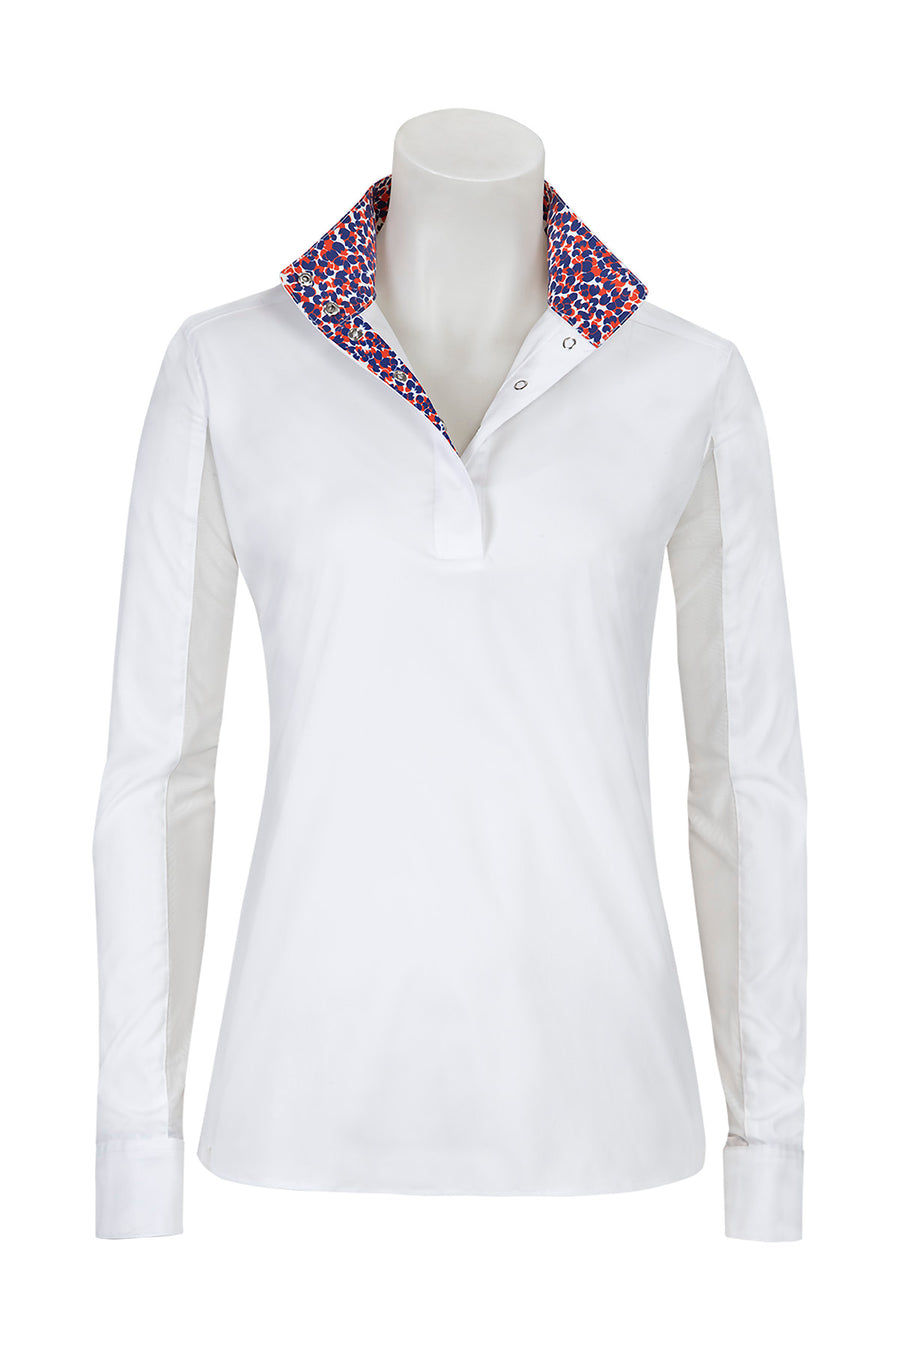 RJ Classics Ladies' Rebecca Show Shirt White/Orange-Show Shirts - Kid's Show Shirt-RJ Classics-White/Orange-L-Manhattan Saddlery